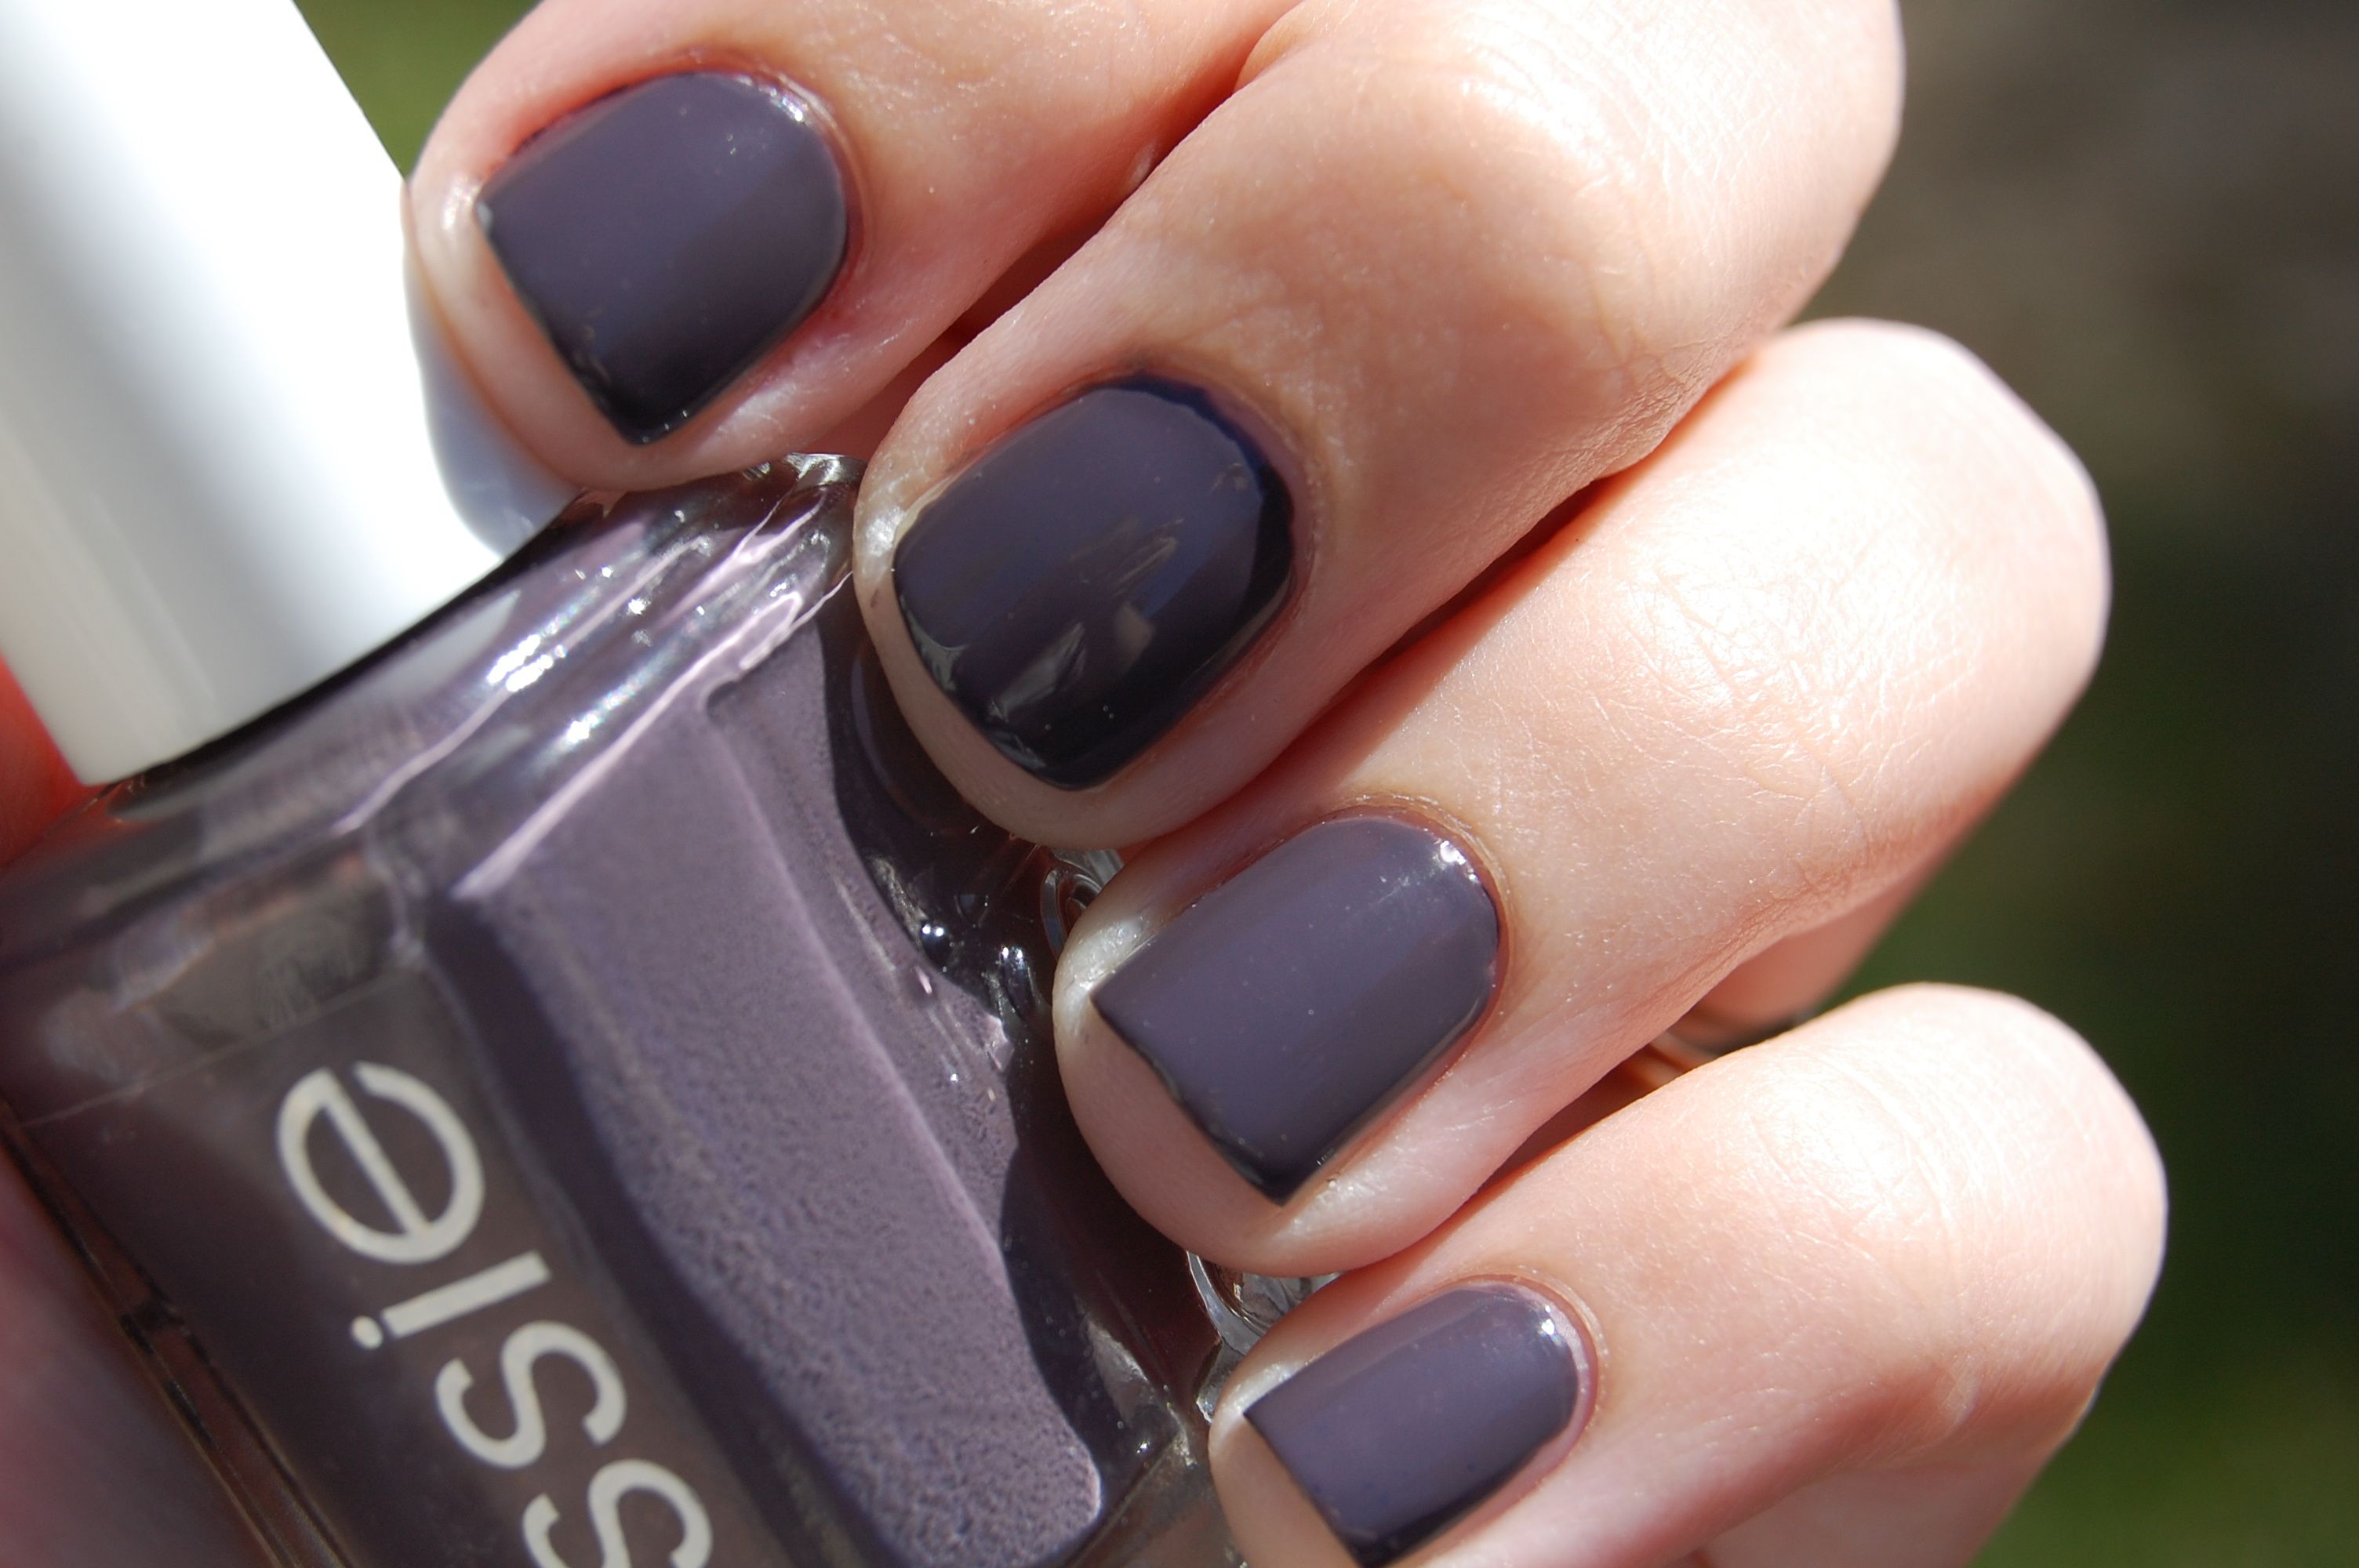 Smokin Hot Essie nail polish | Girly Stuff | Pinterest | Essie nail ...